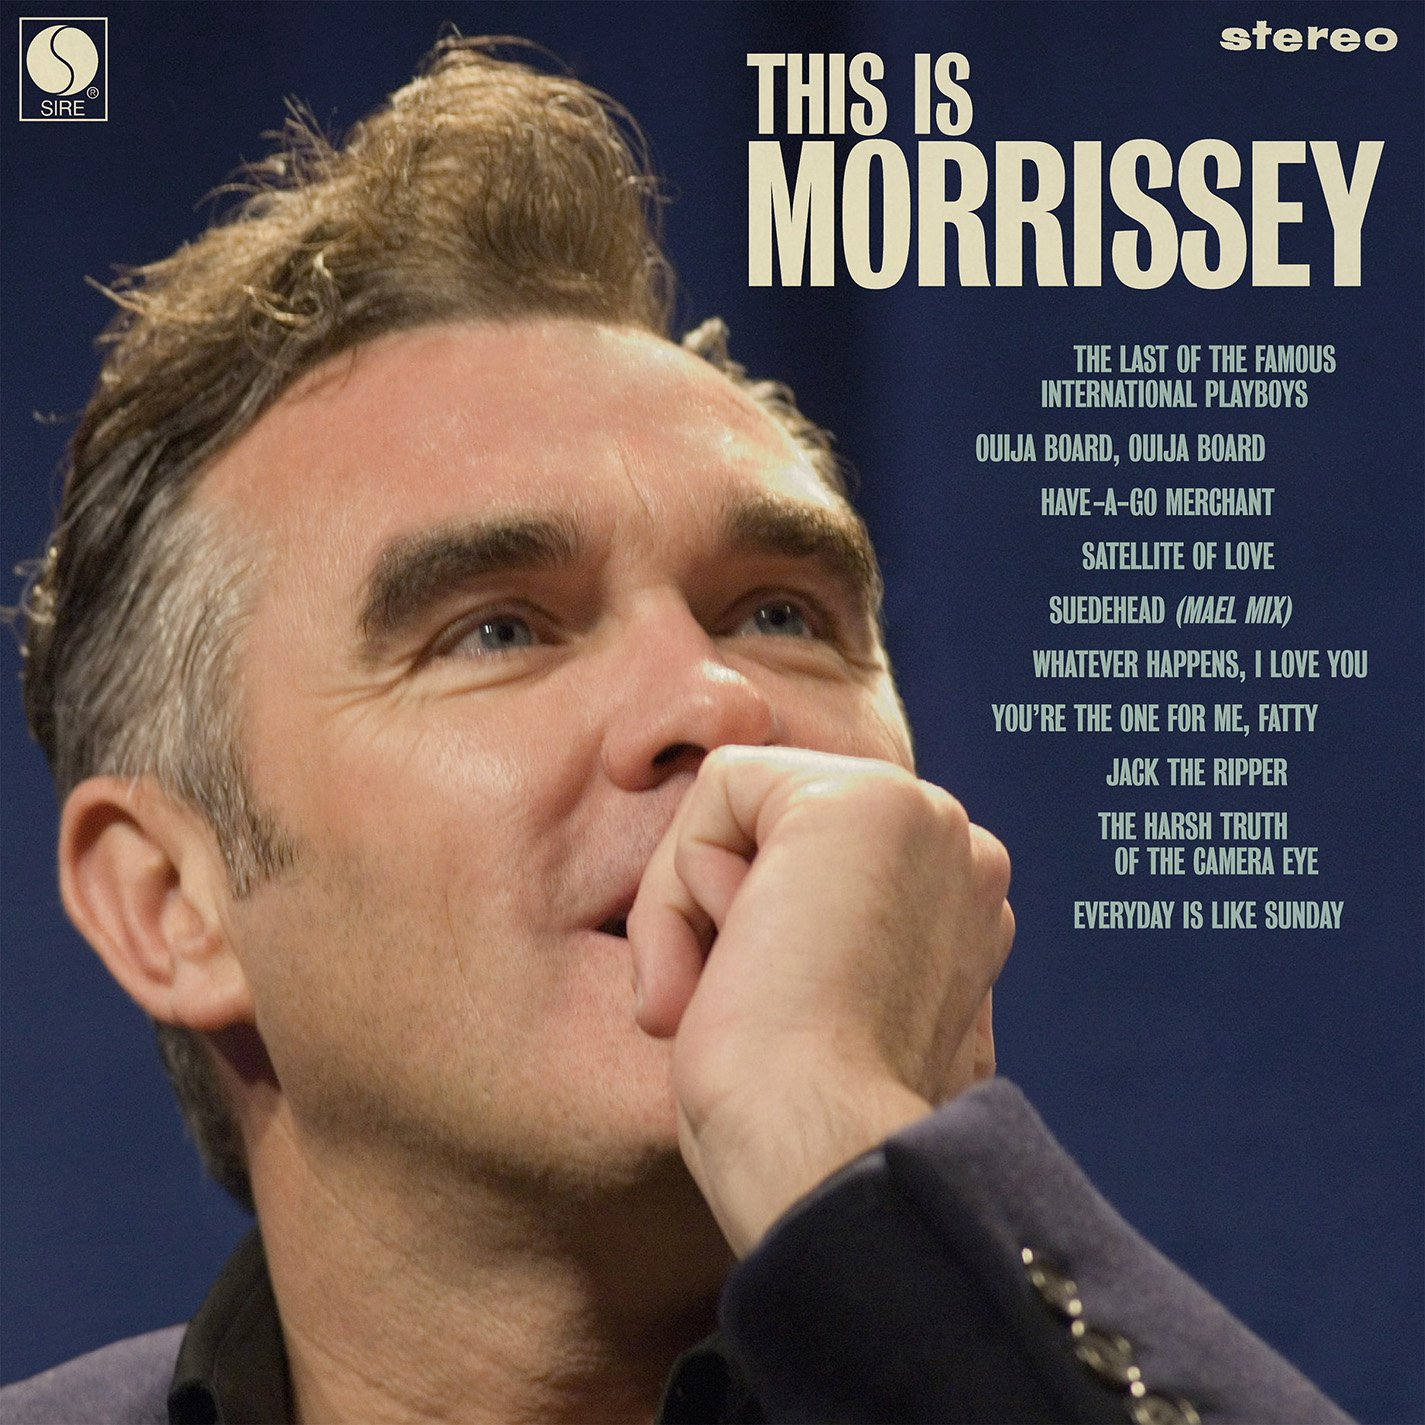 Morrissey This Is Morrissey LP Amazon Music